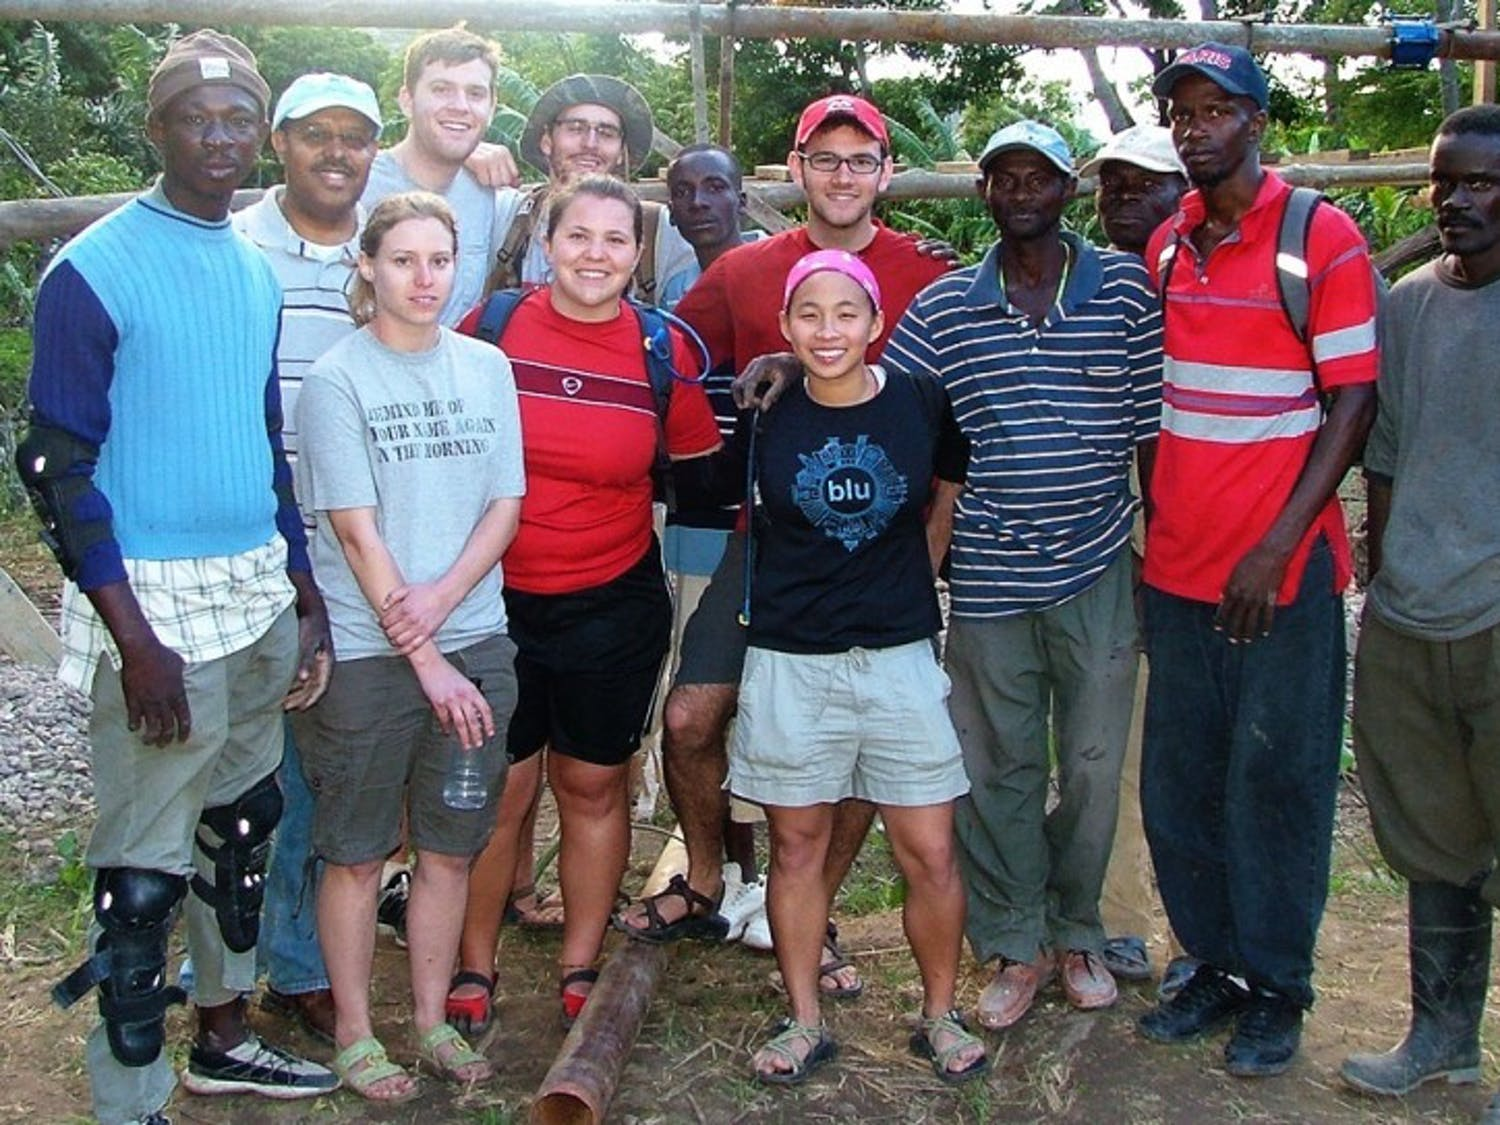 Searching for buried hope: UW students work to keep Haiti fresh in our minds